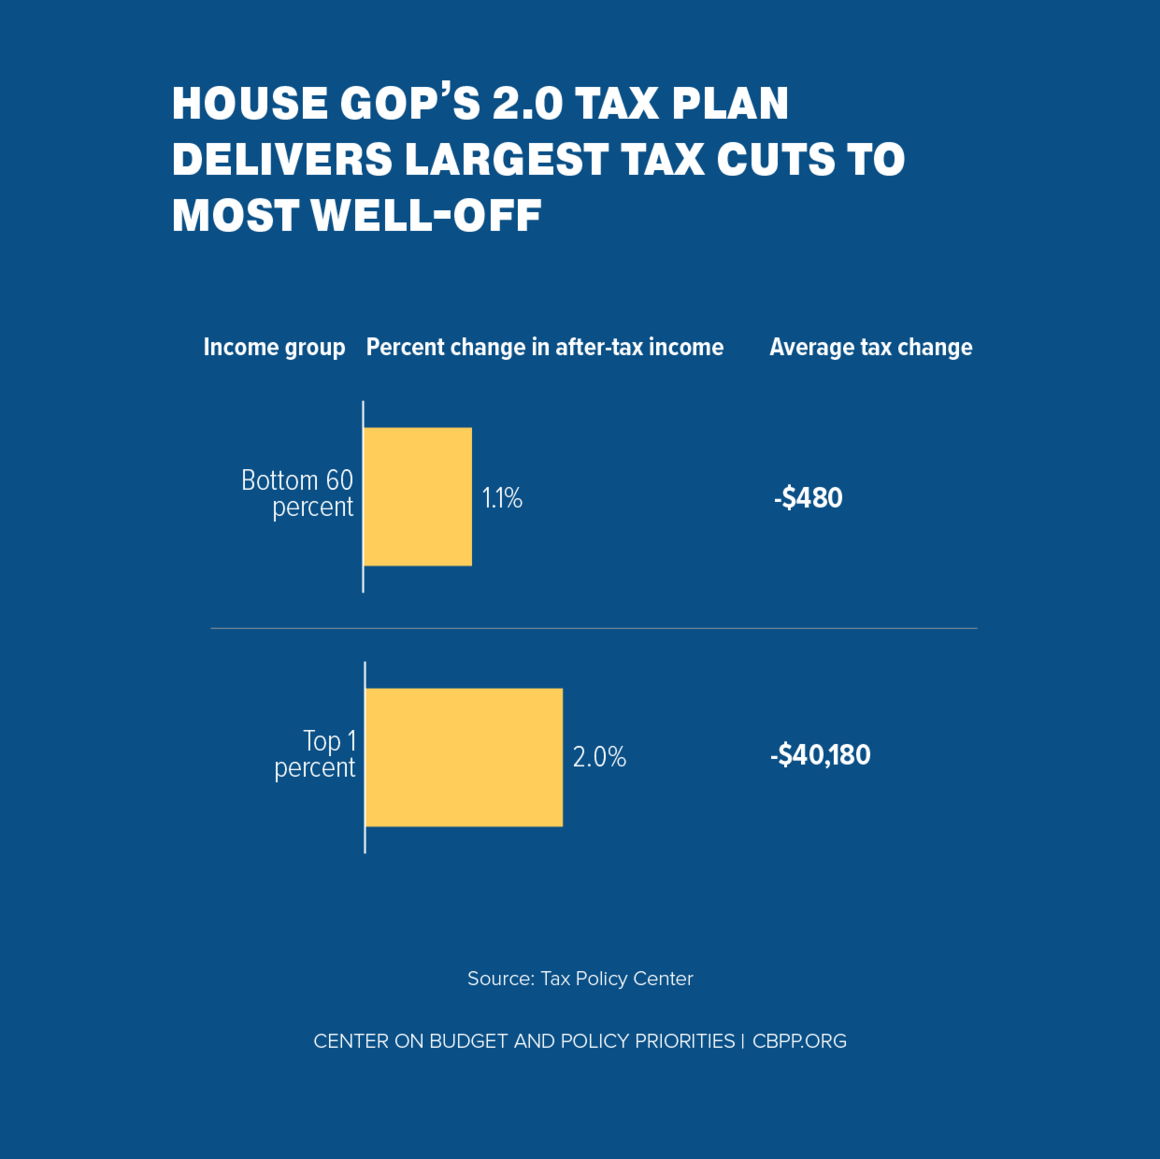 House GOP's 2.0 Tax Plan Delivers Largest Tax Cuts to Most Well-Off